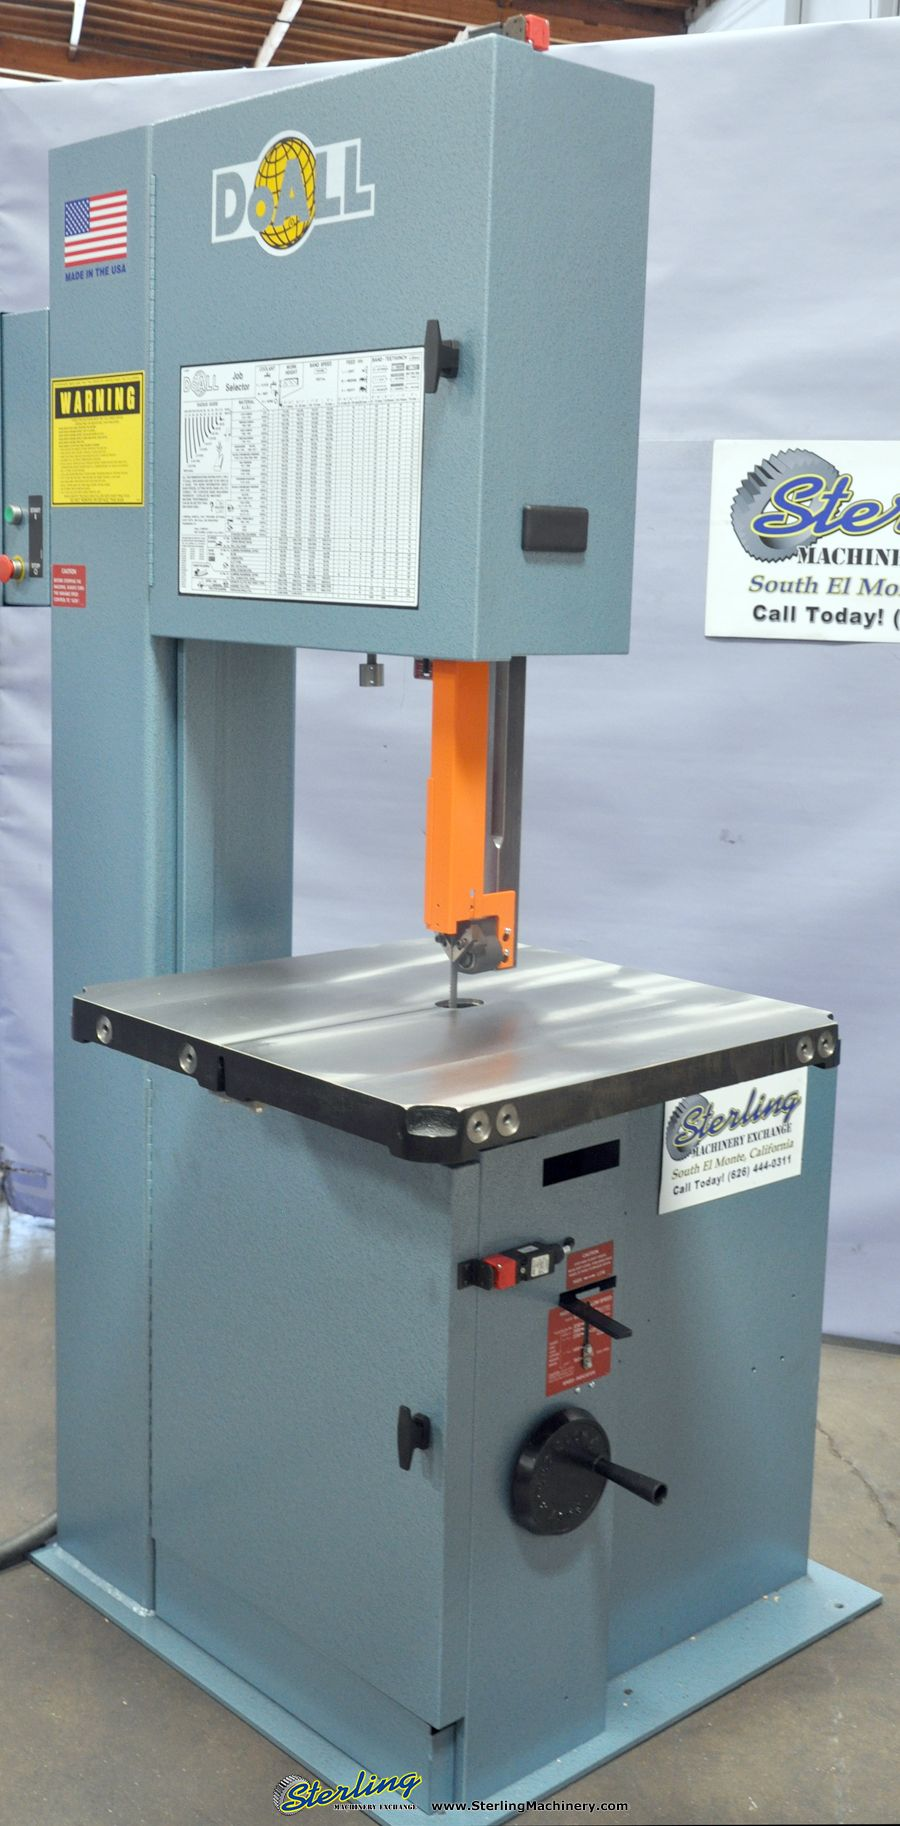 medium resolution of 20 brand new doall vertical contour bandsaw mdl 2013 v high low transmission made in the u s a sm2013v